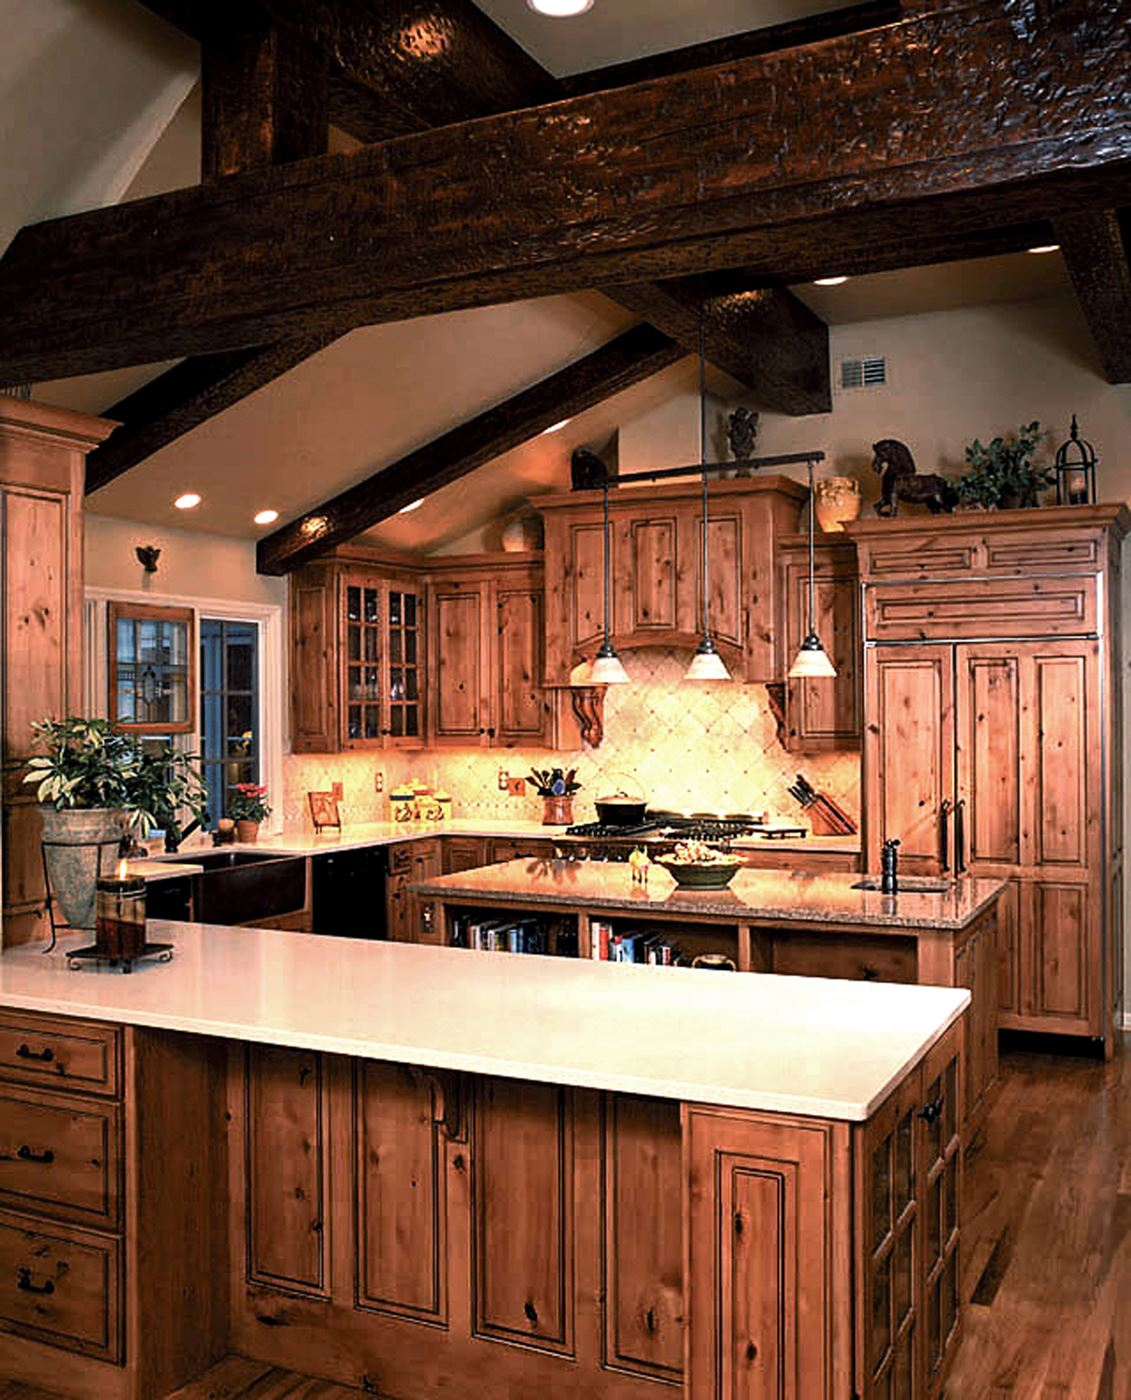 Colorado Knotty Alder Kitchen Cabinets: Custom Wood Products